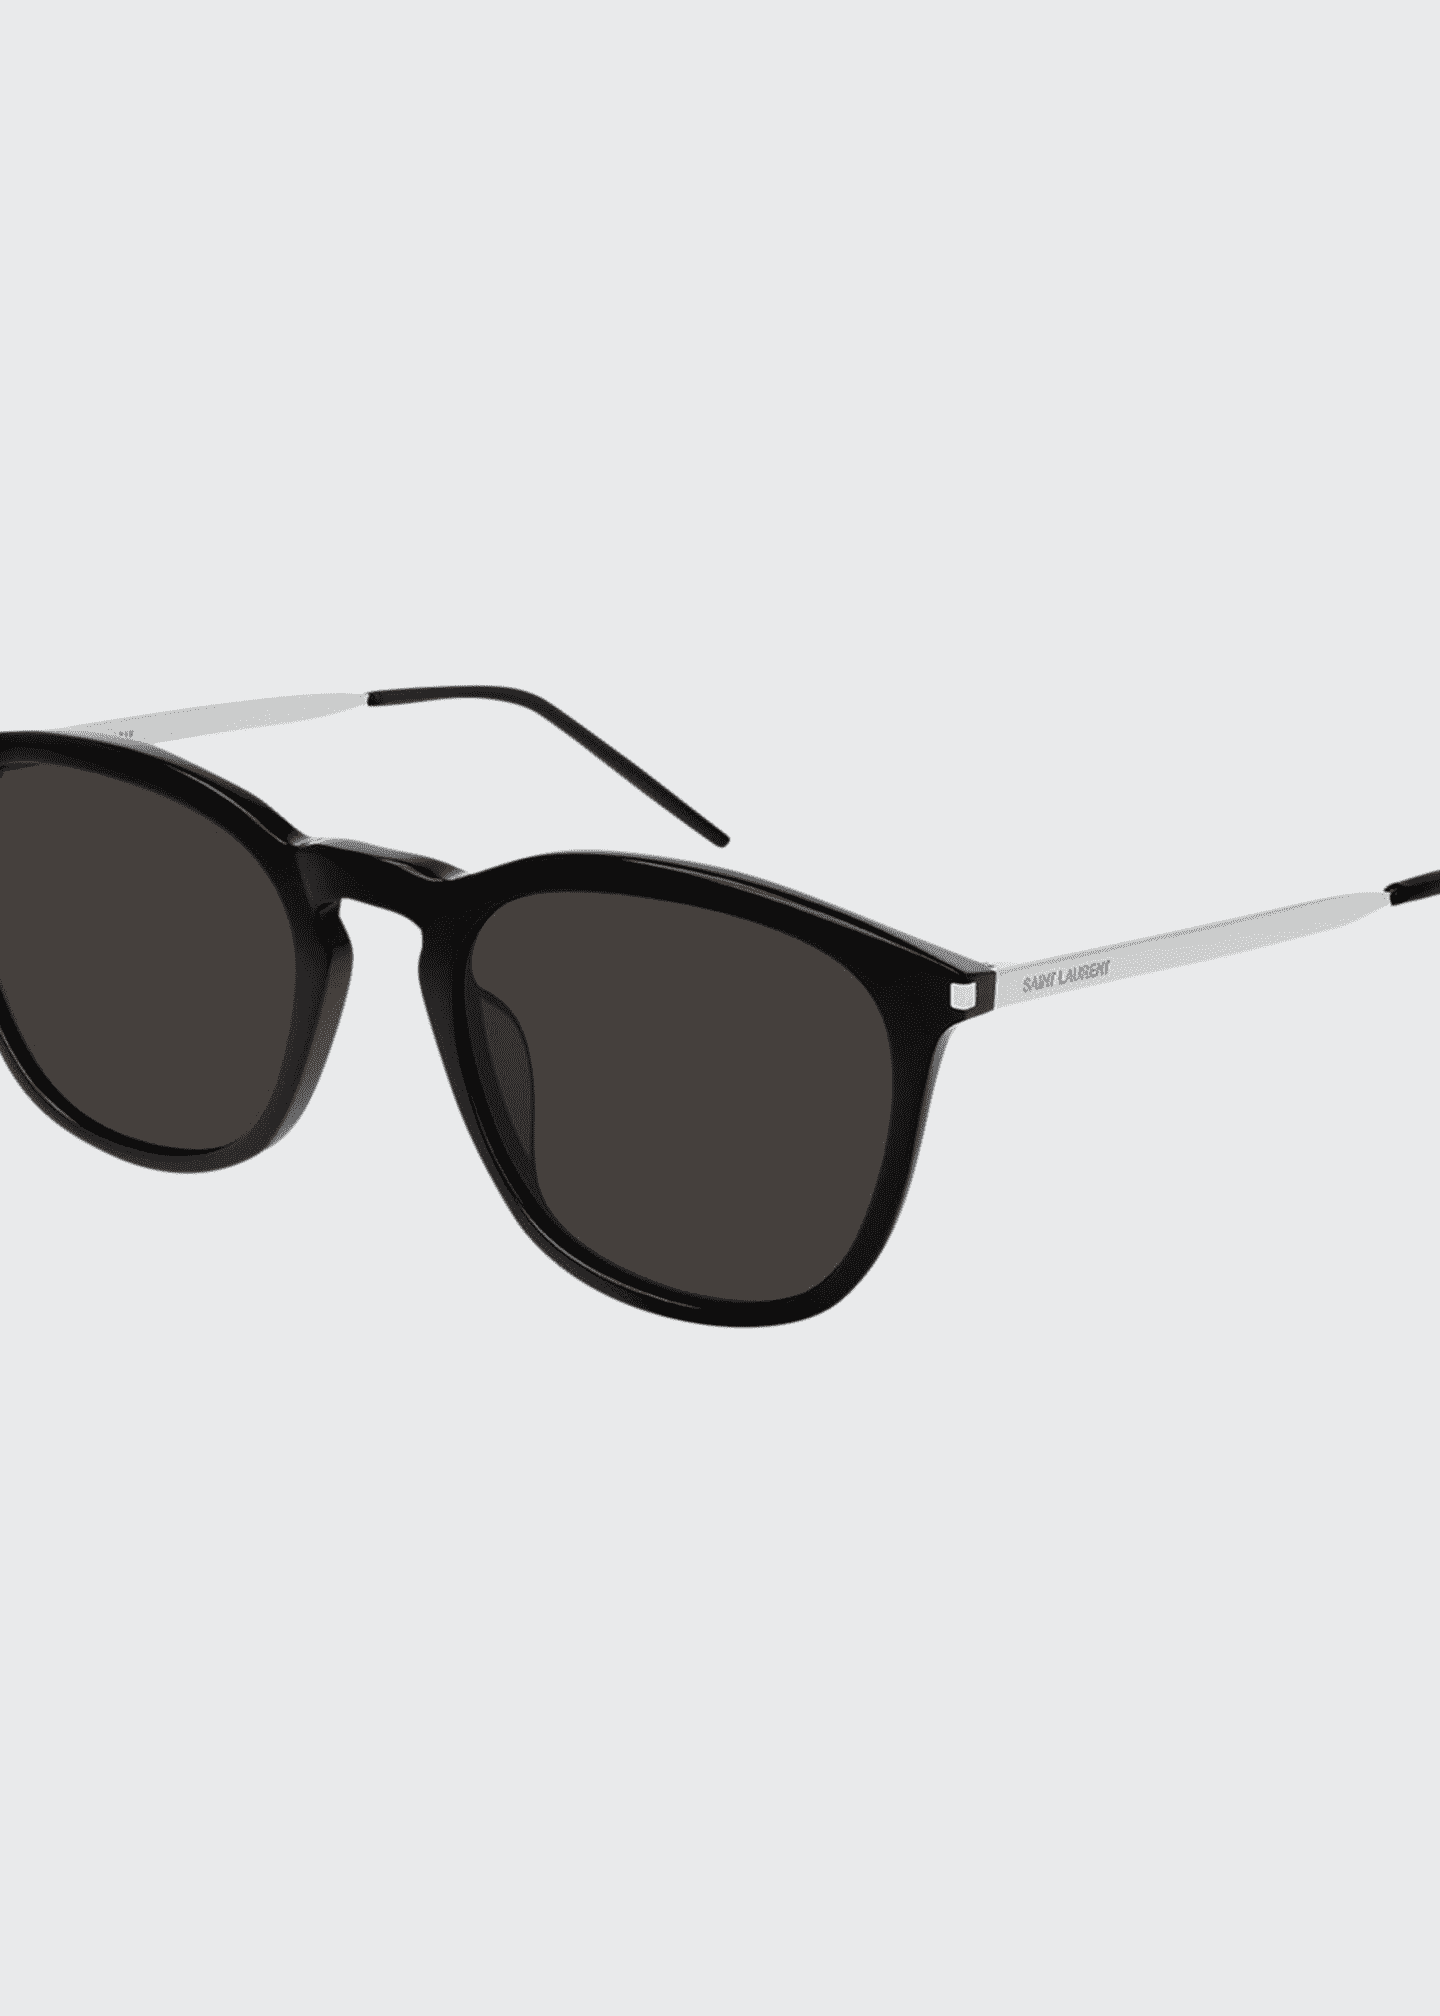 Image 1 of 1: Men's Square Acetate/Metal Sunglasses